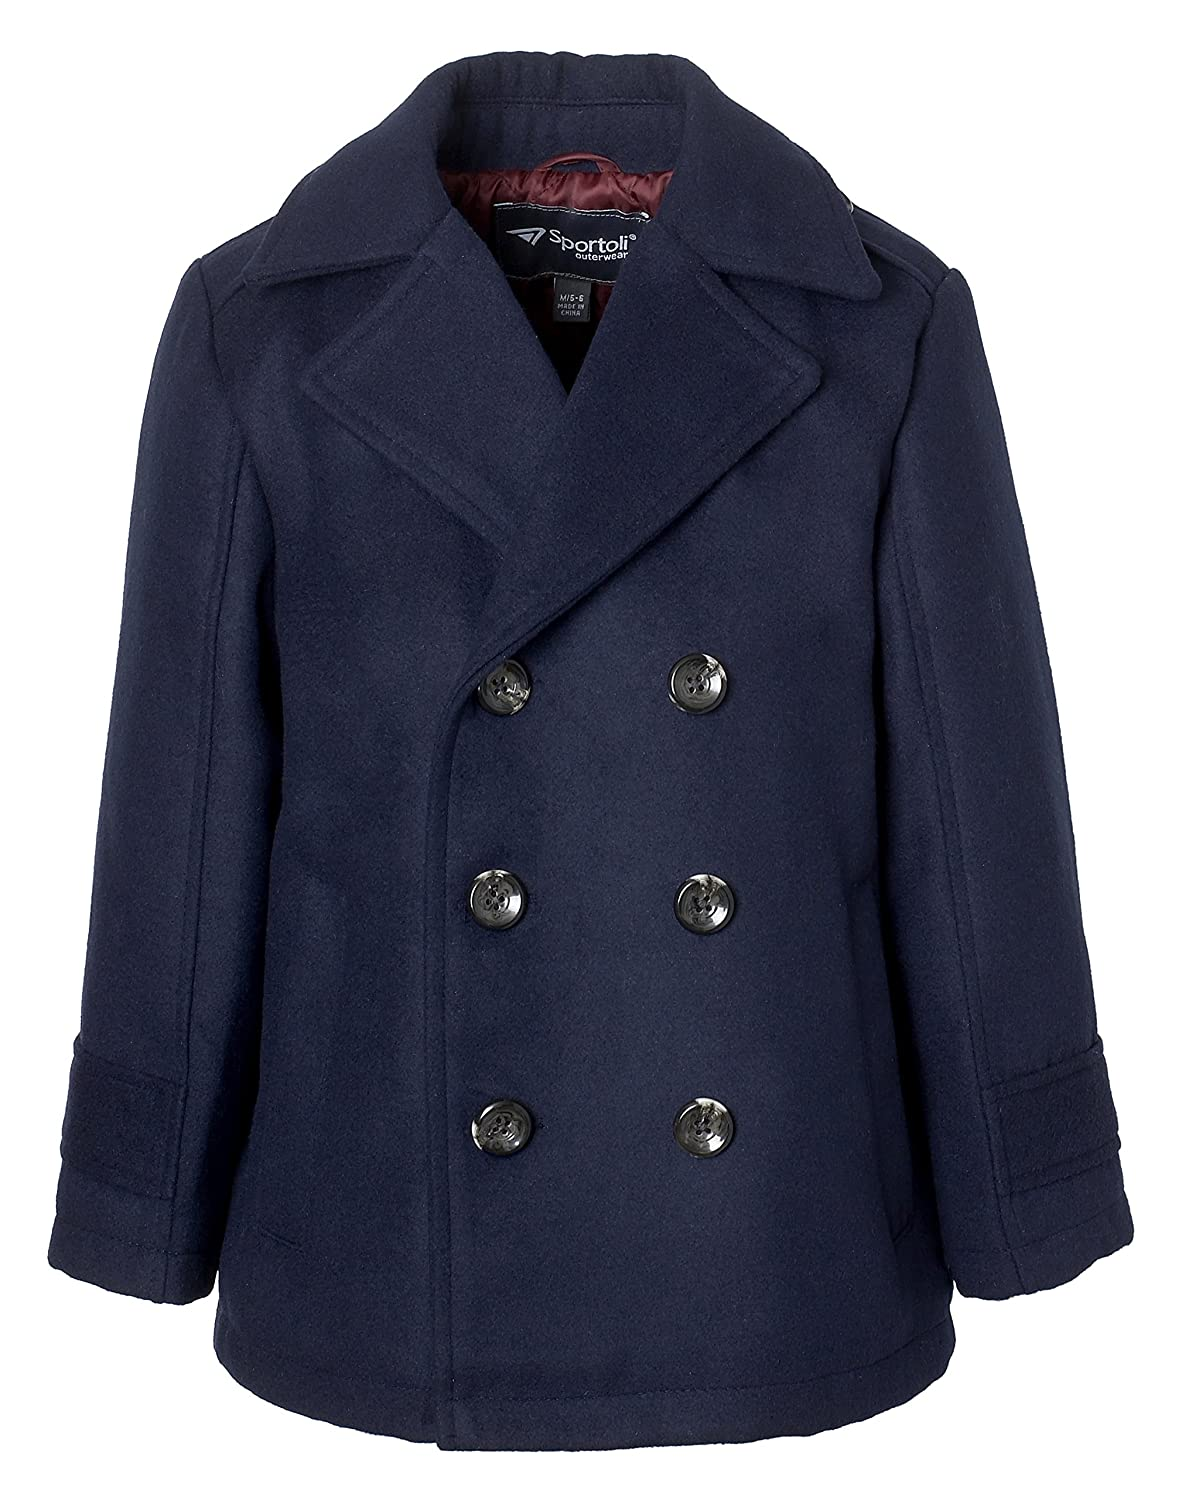 Sportoli Boy Classic Wool Look Lined Winter Vestee Dress Pea Coat Peacoat Jacket